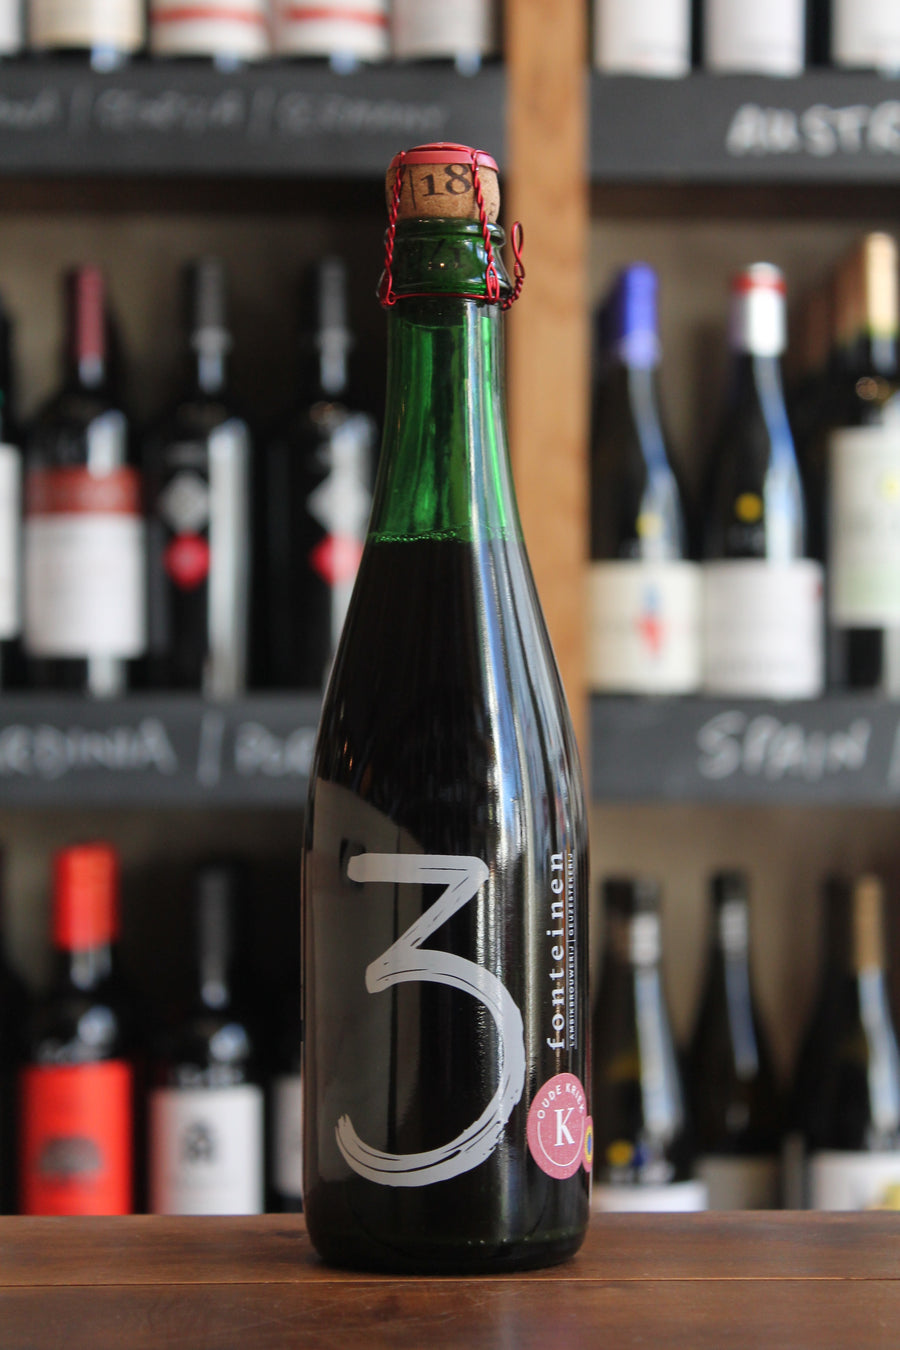 3 Fonteinen - Oude Kriek - 37.5cl Bottle